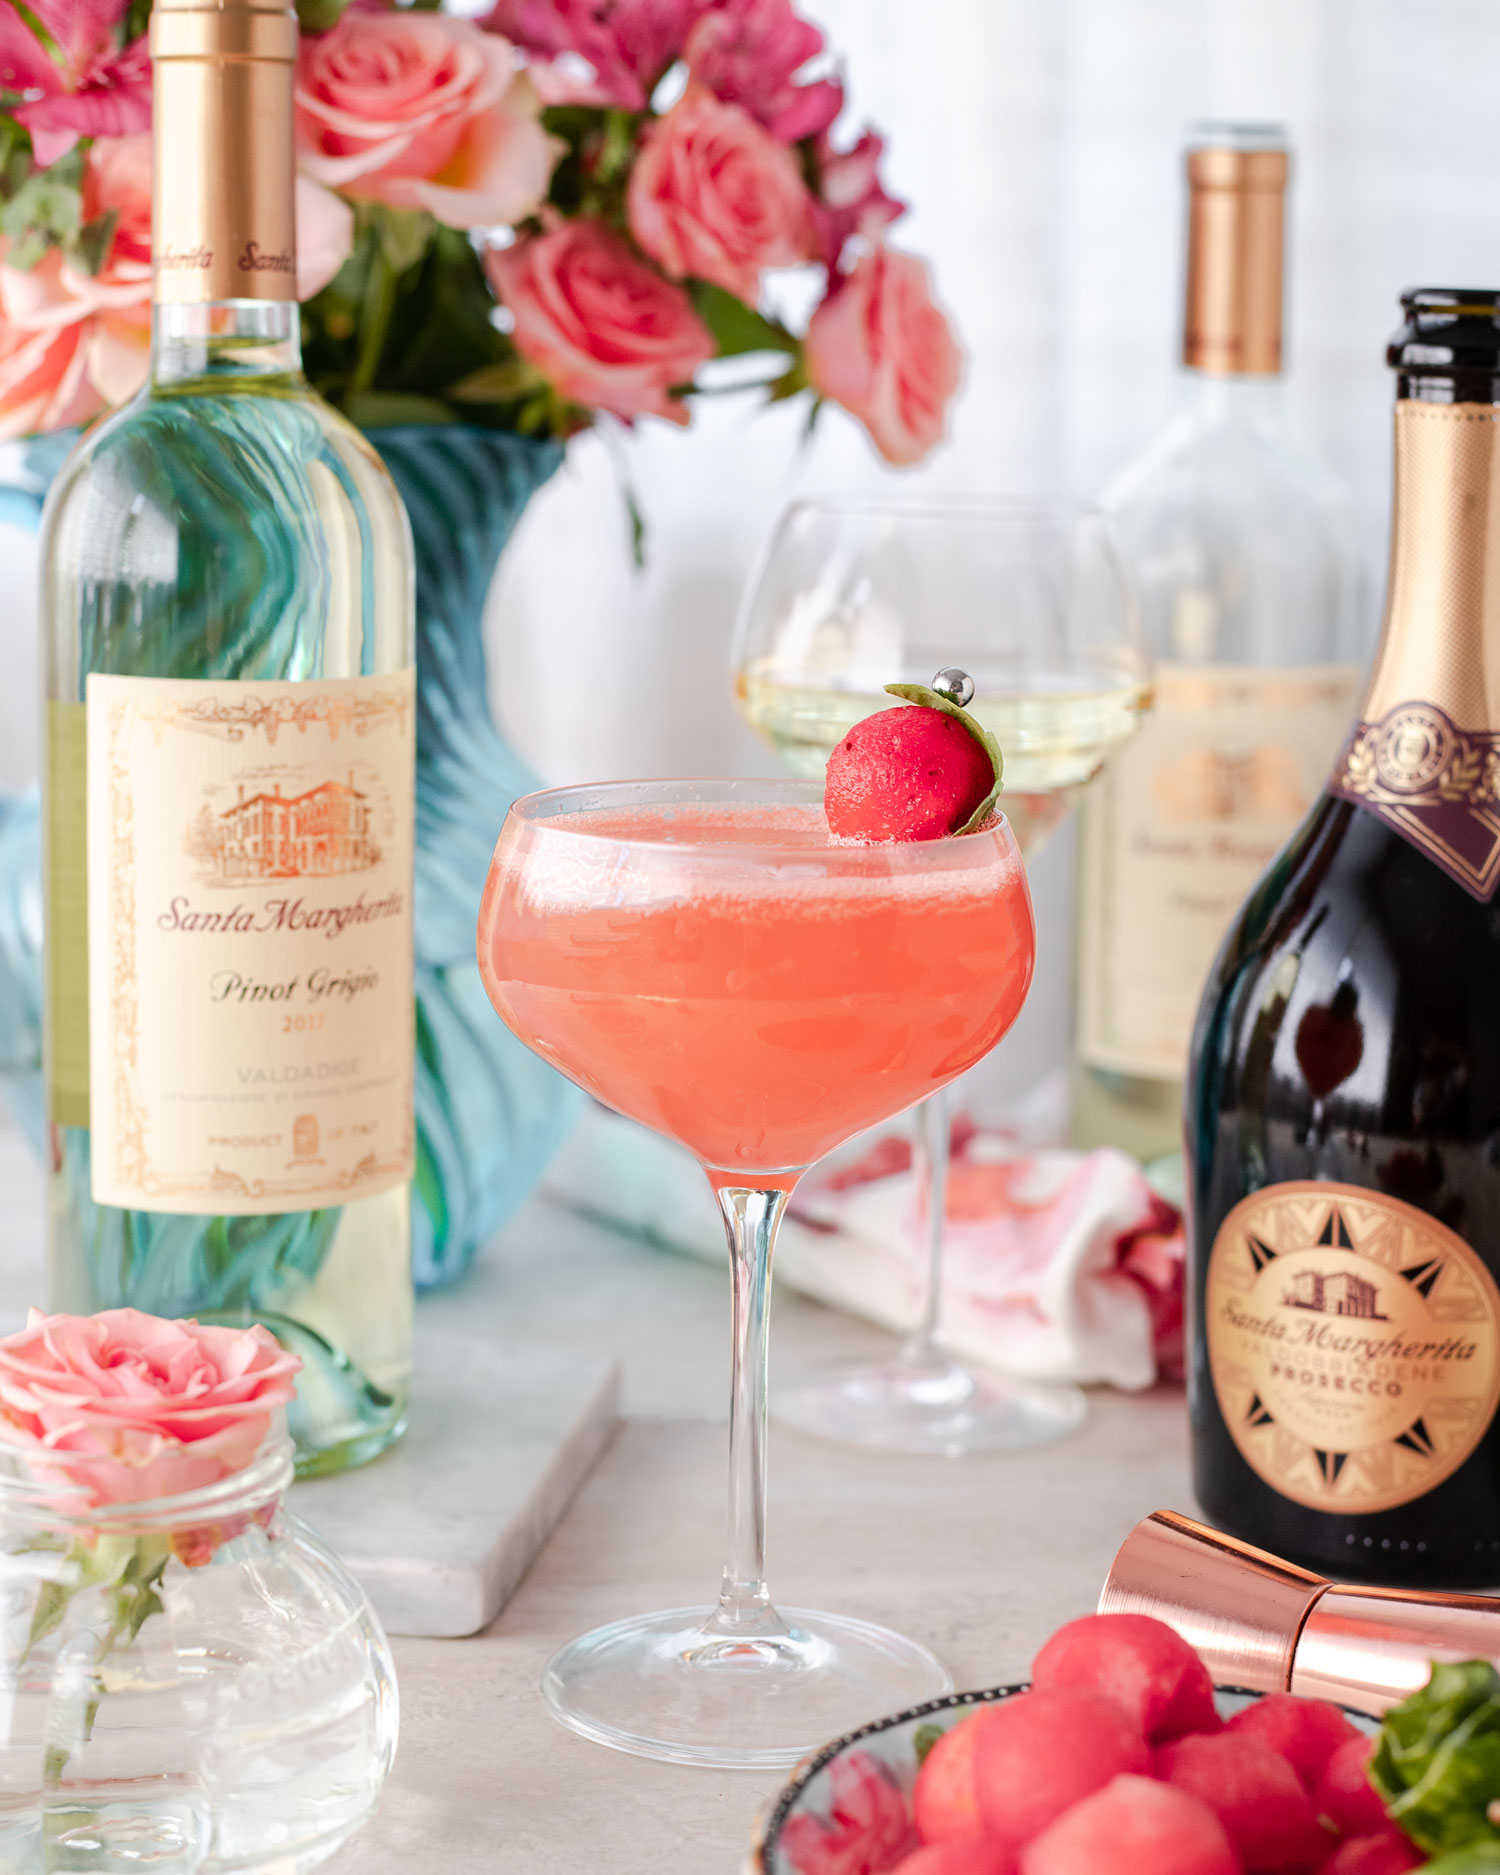 Msg 4 21+ Prosecco Watermelon Basil Sparkler Wine Cocktail is made with fresh watermelon, basil, tequila, and Santa Margherita wine. Find out how I happy hour for #NationalWineDay with this tequila and wine cocktail. #ad #SipTheSummer #UncorkExtraordinary #SantaMargheritaWines #ElleTalk #Tequila #TequilaDrink #Wine #WineCocktail #CocktailRecipe